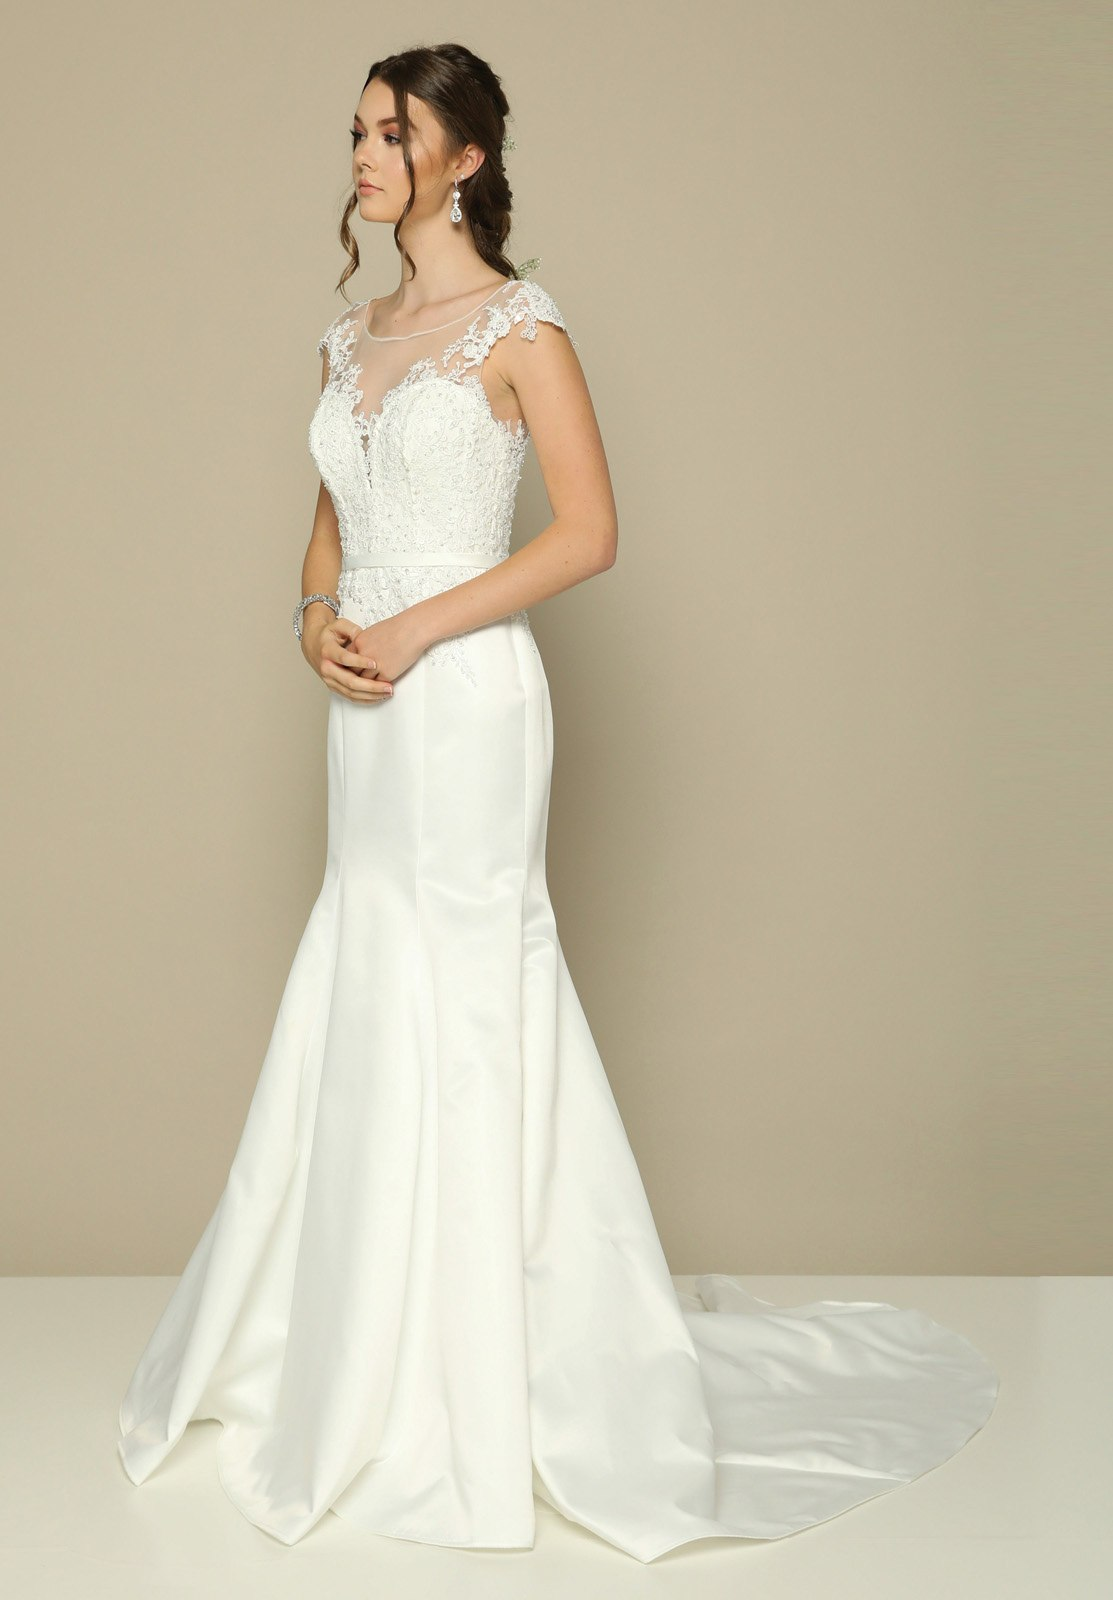 16b013cdd98 Juliet 381 Cap Sleeved Illusion Mermaid Wedding Gown Ivory ...